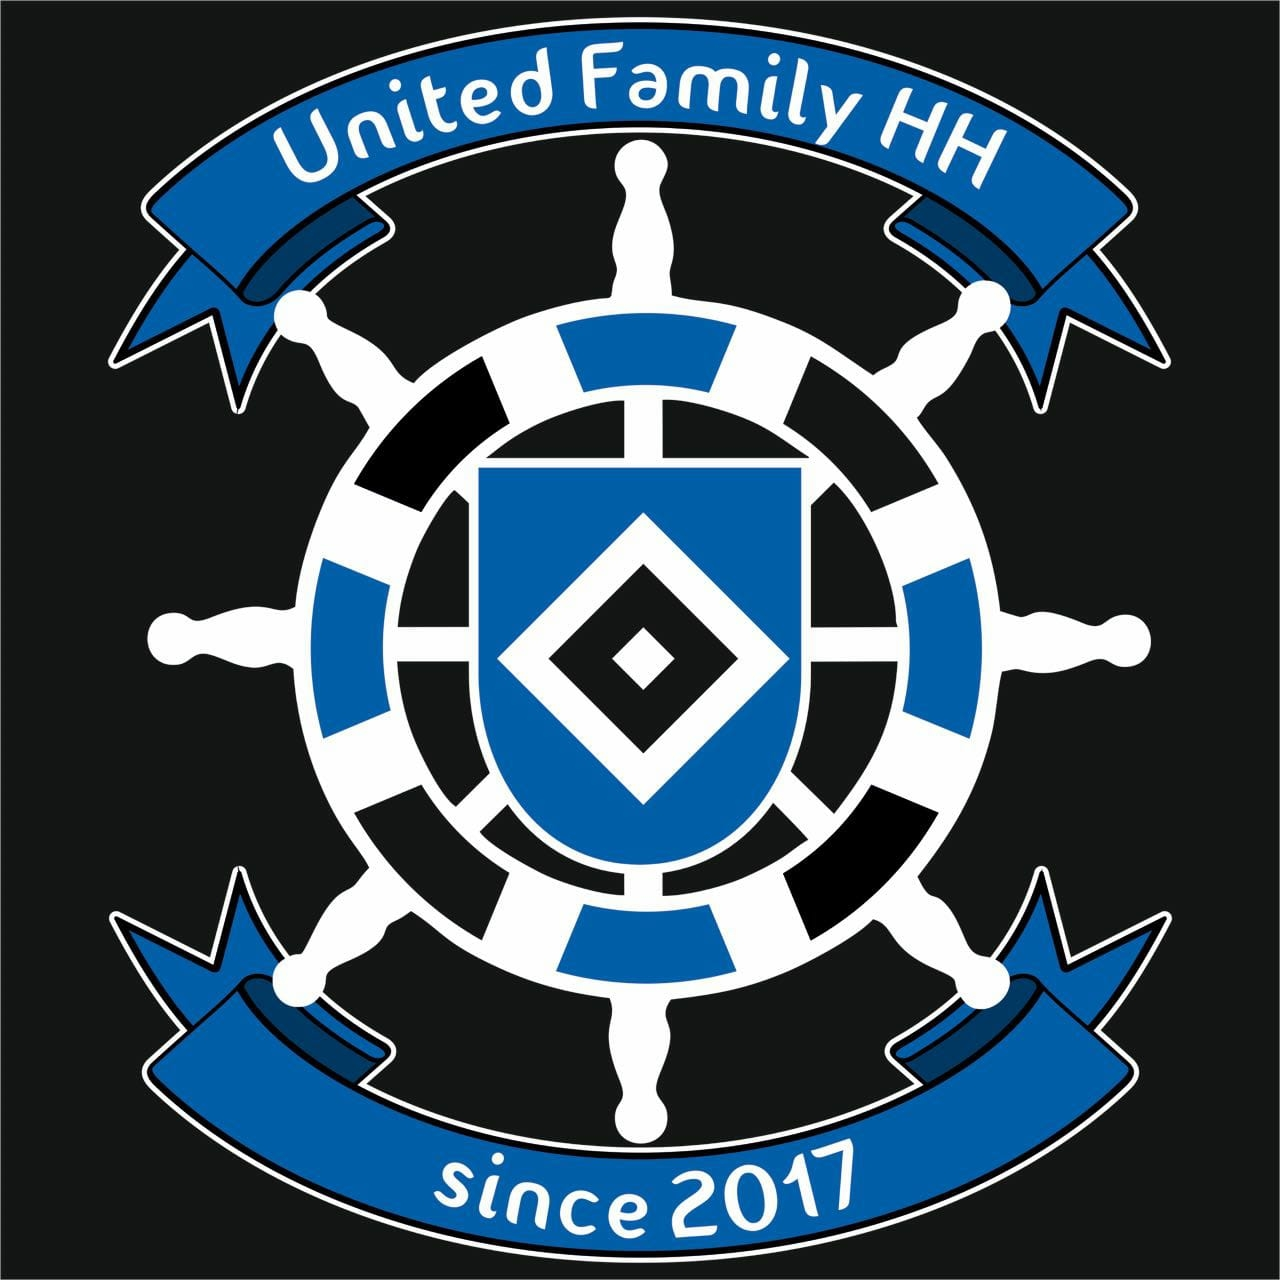 United Family HH